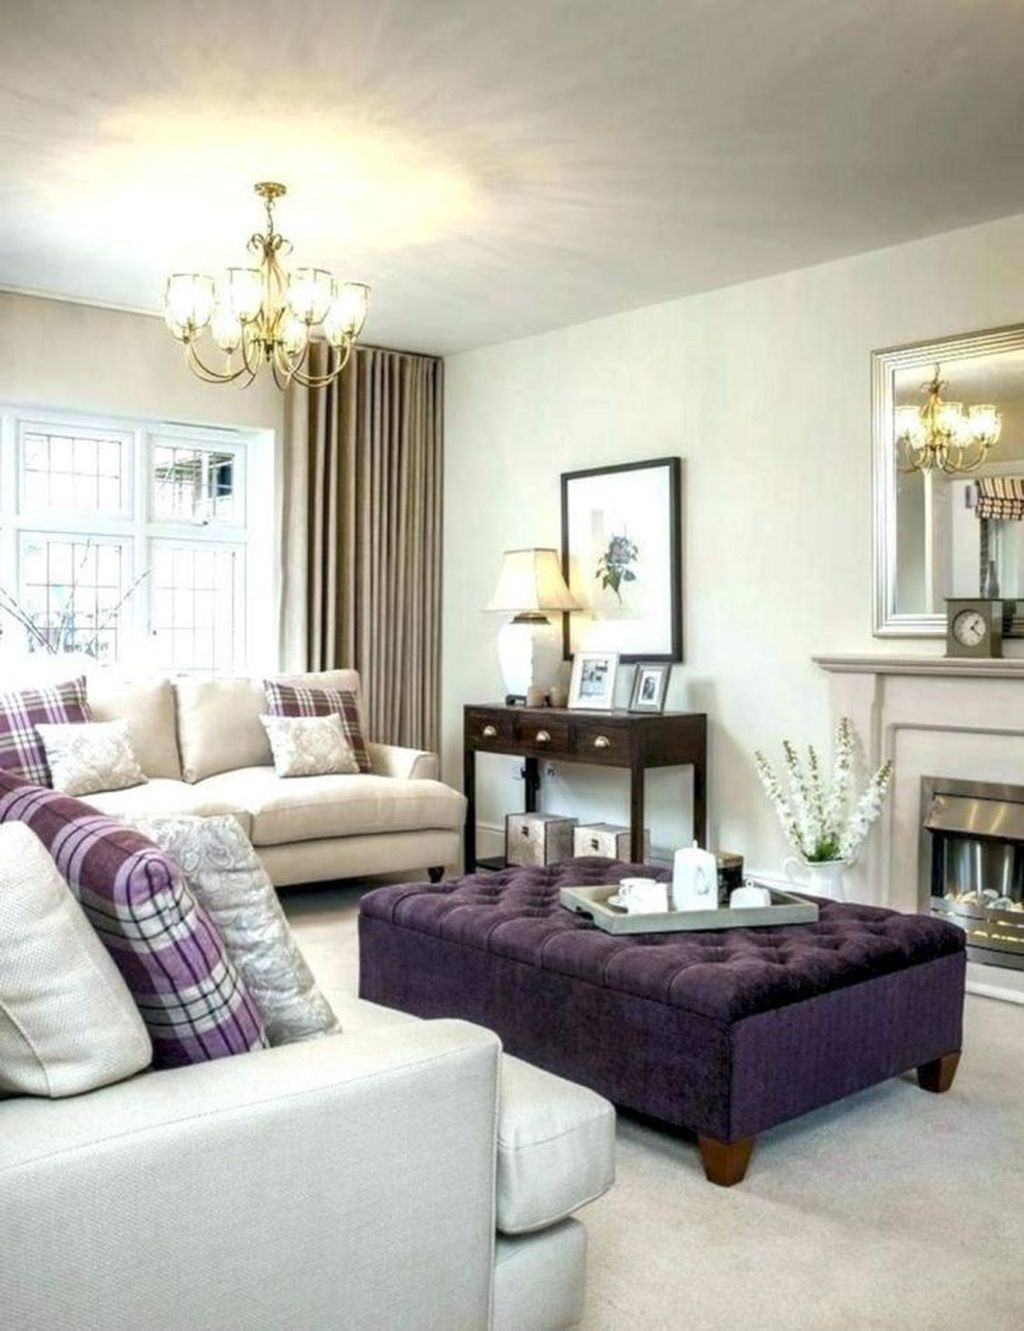 40 Awesome Living Room Green And Purple Interior Color Idea